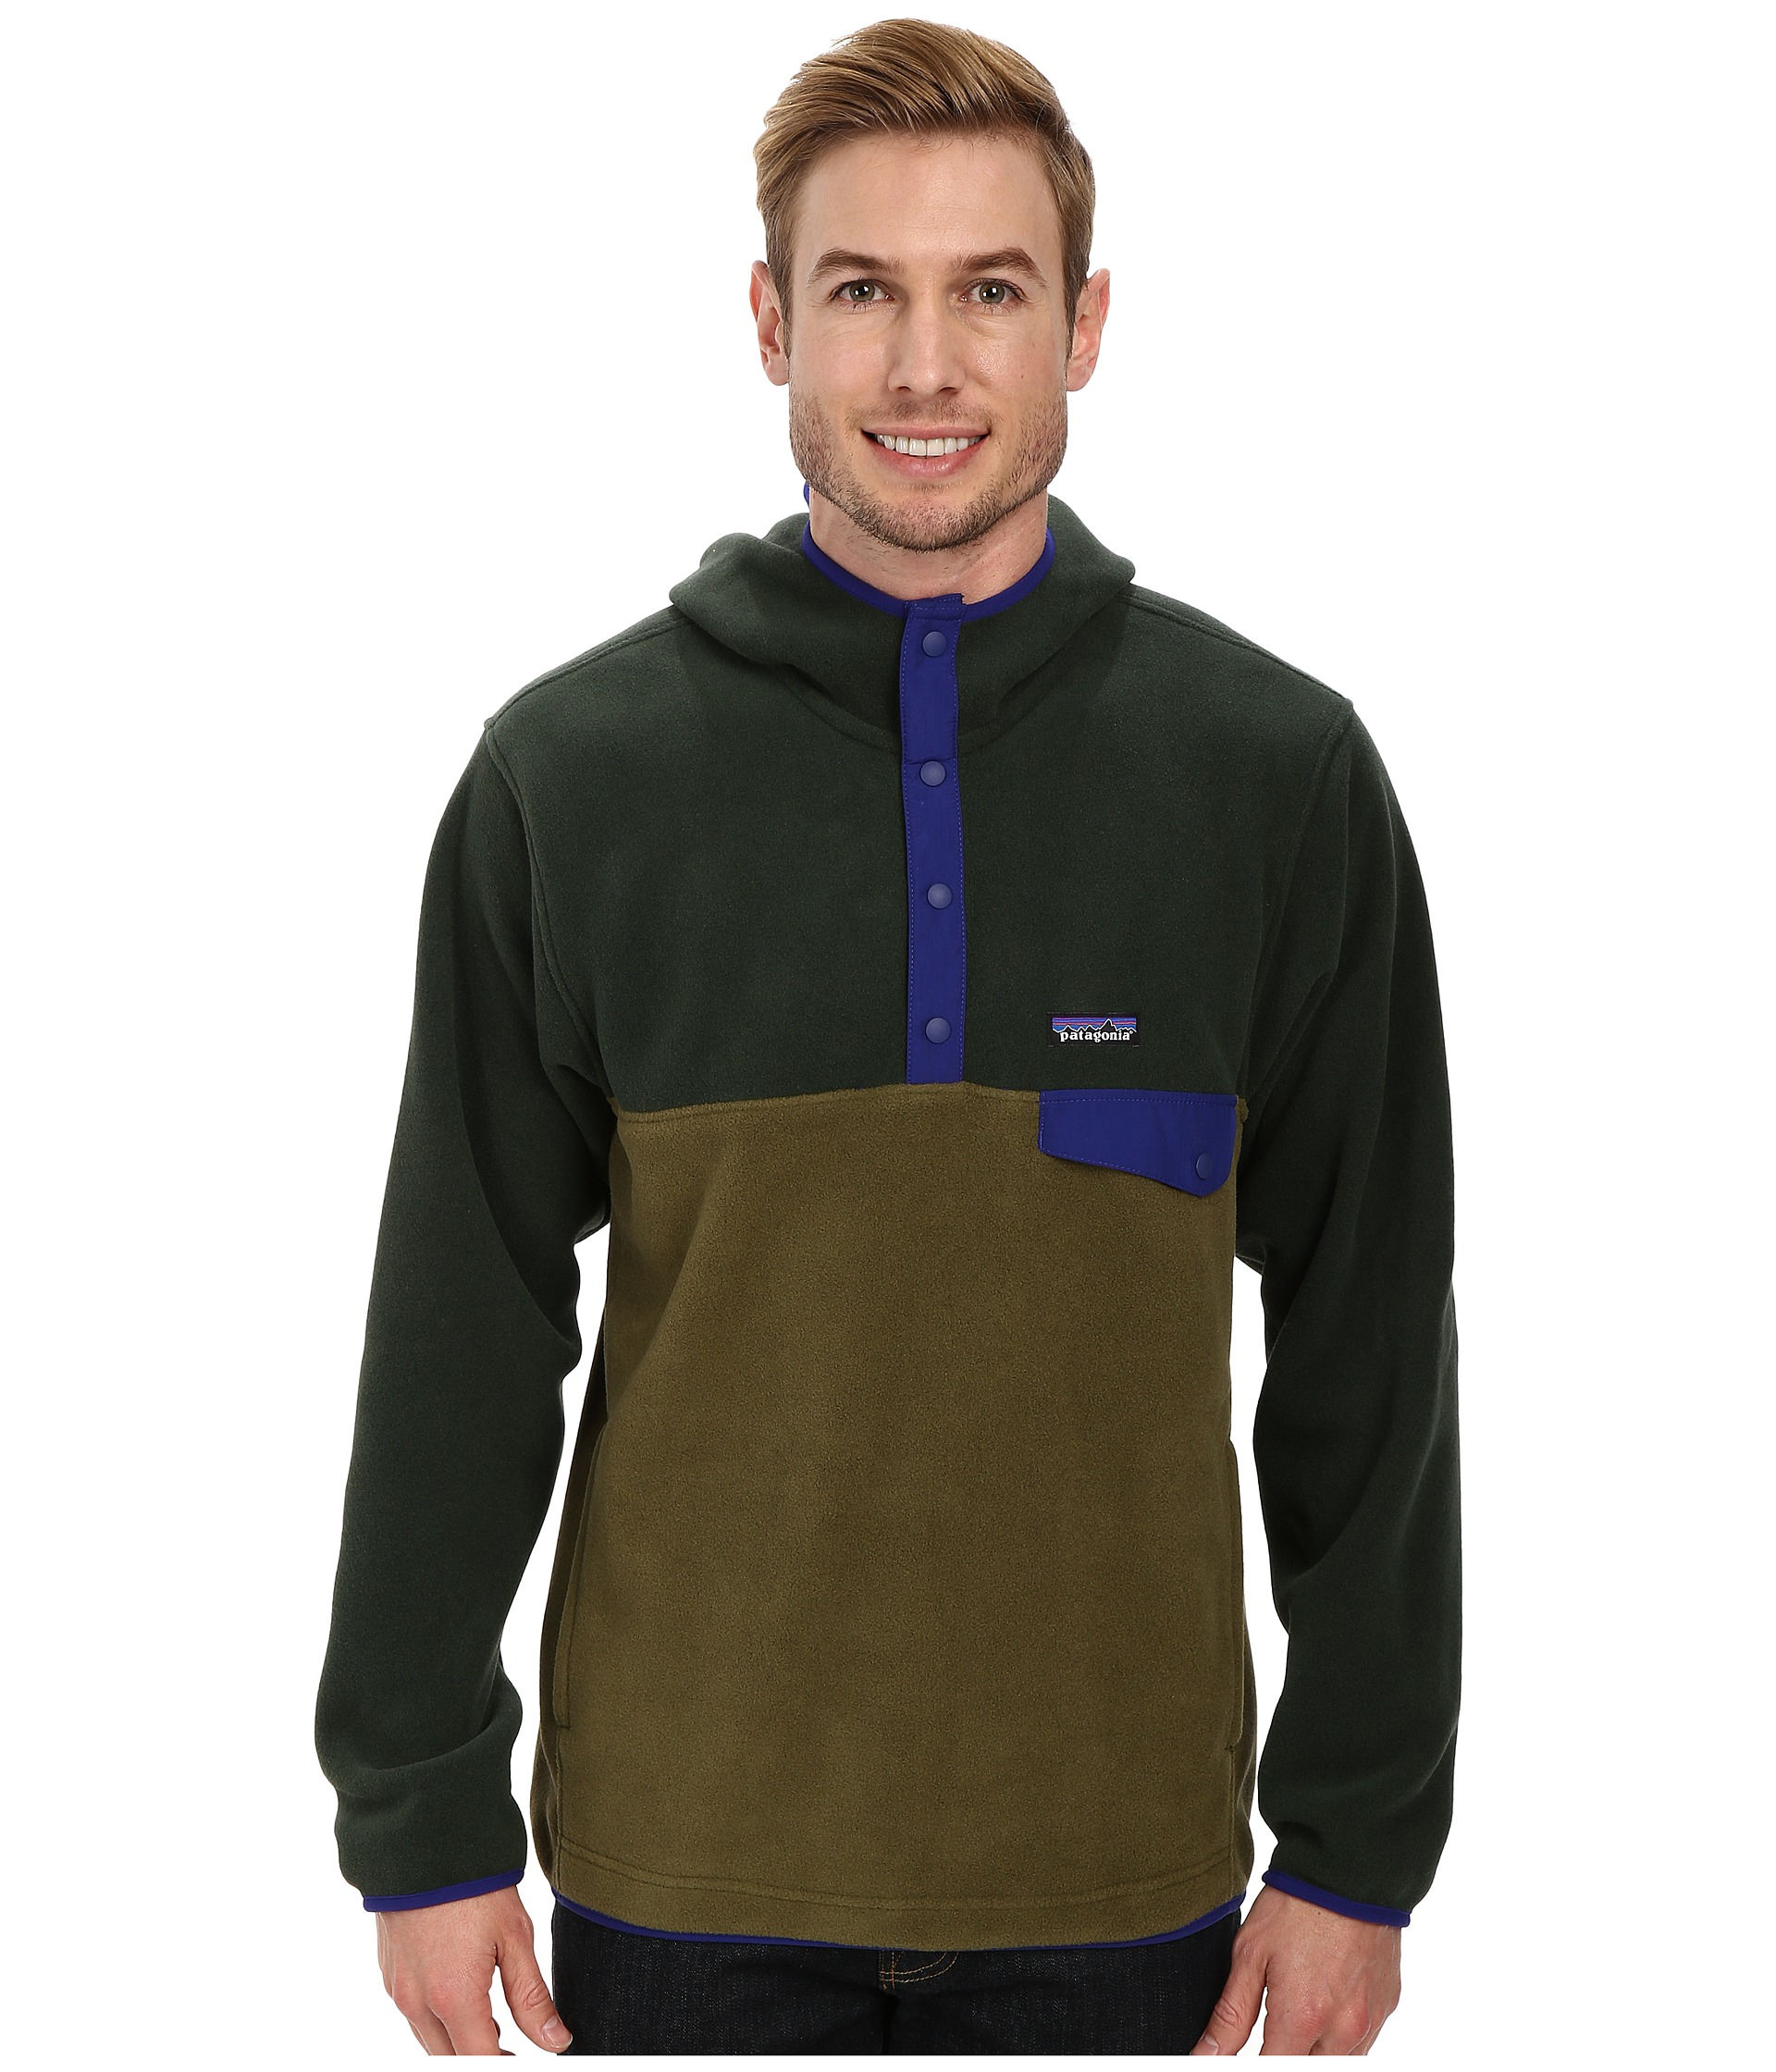 Patagonia Synchilla Snap-t Mens | Patagonia Synchilla Fleece Vest | Patagonia Synchilla